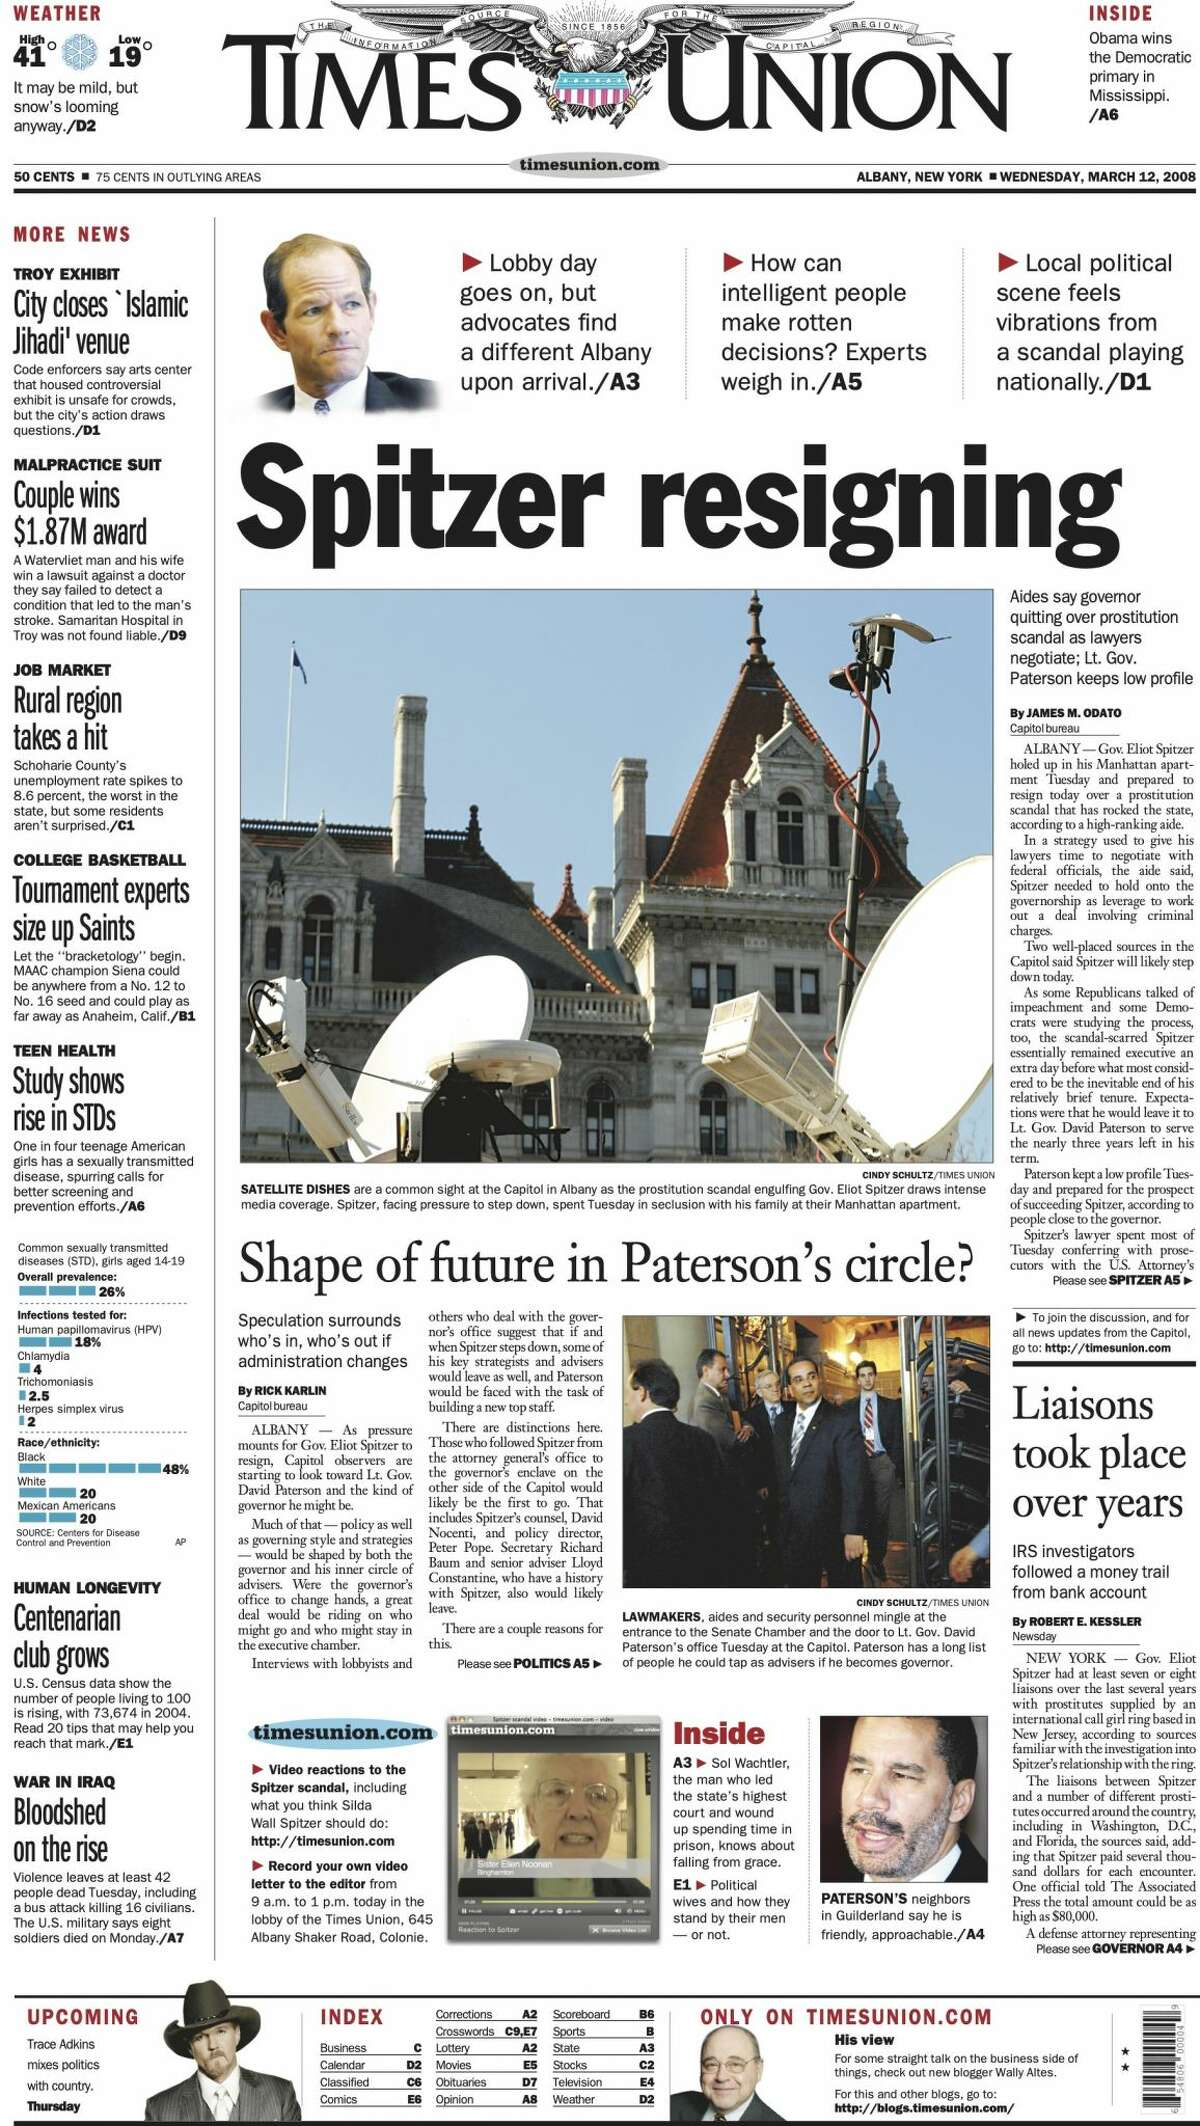 Front page of the Times Union on March 12, 2008, the day New York Gov. Eliot Spitzer announced his resignation in the wake of a sex scandal.